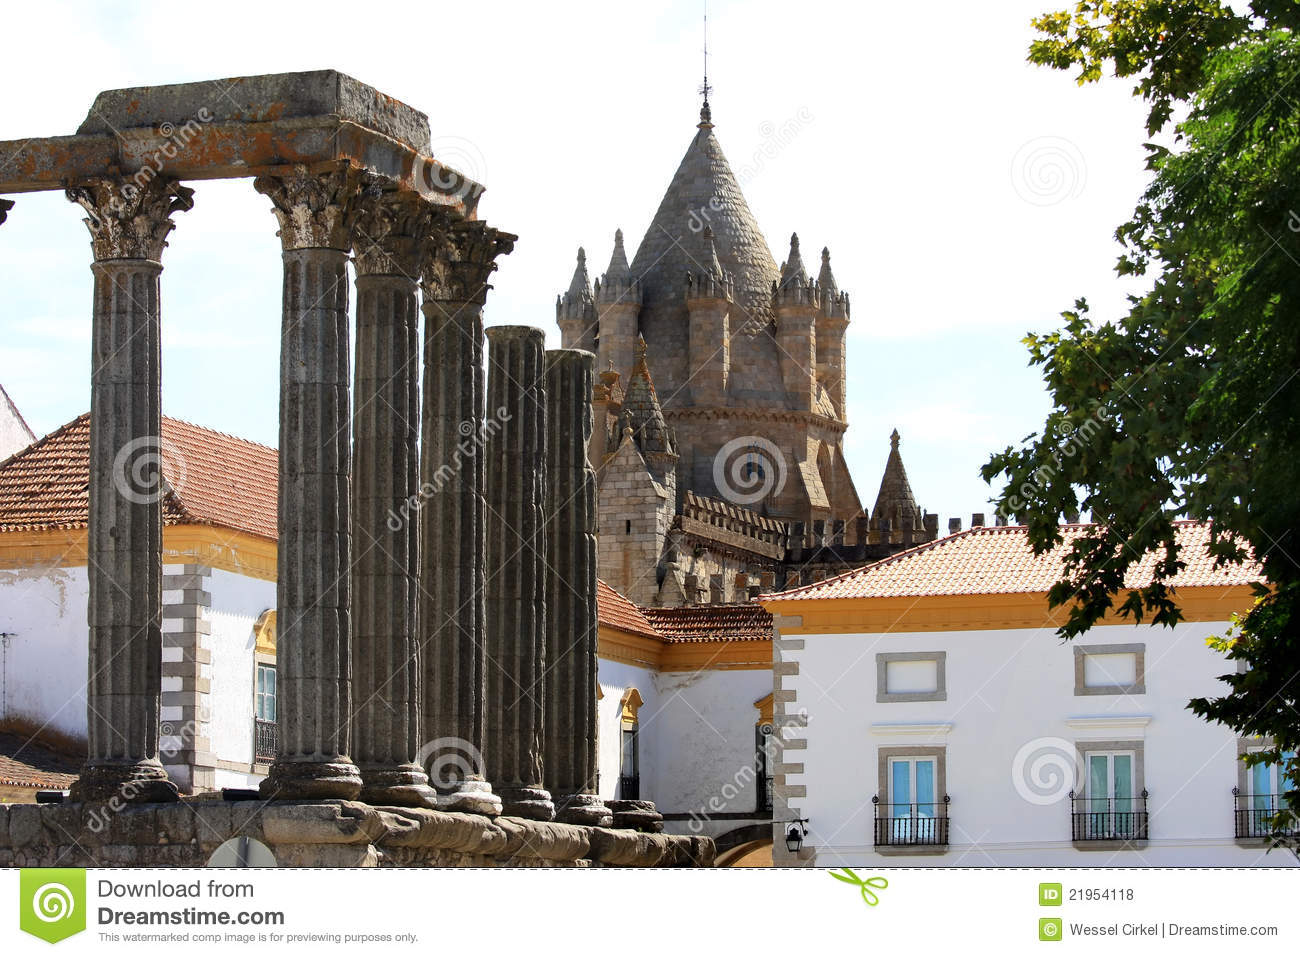 Roman Temple and cathedral in Evora, Portugal